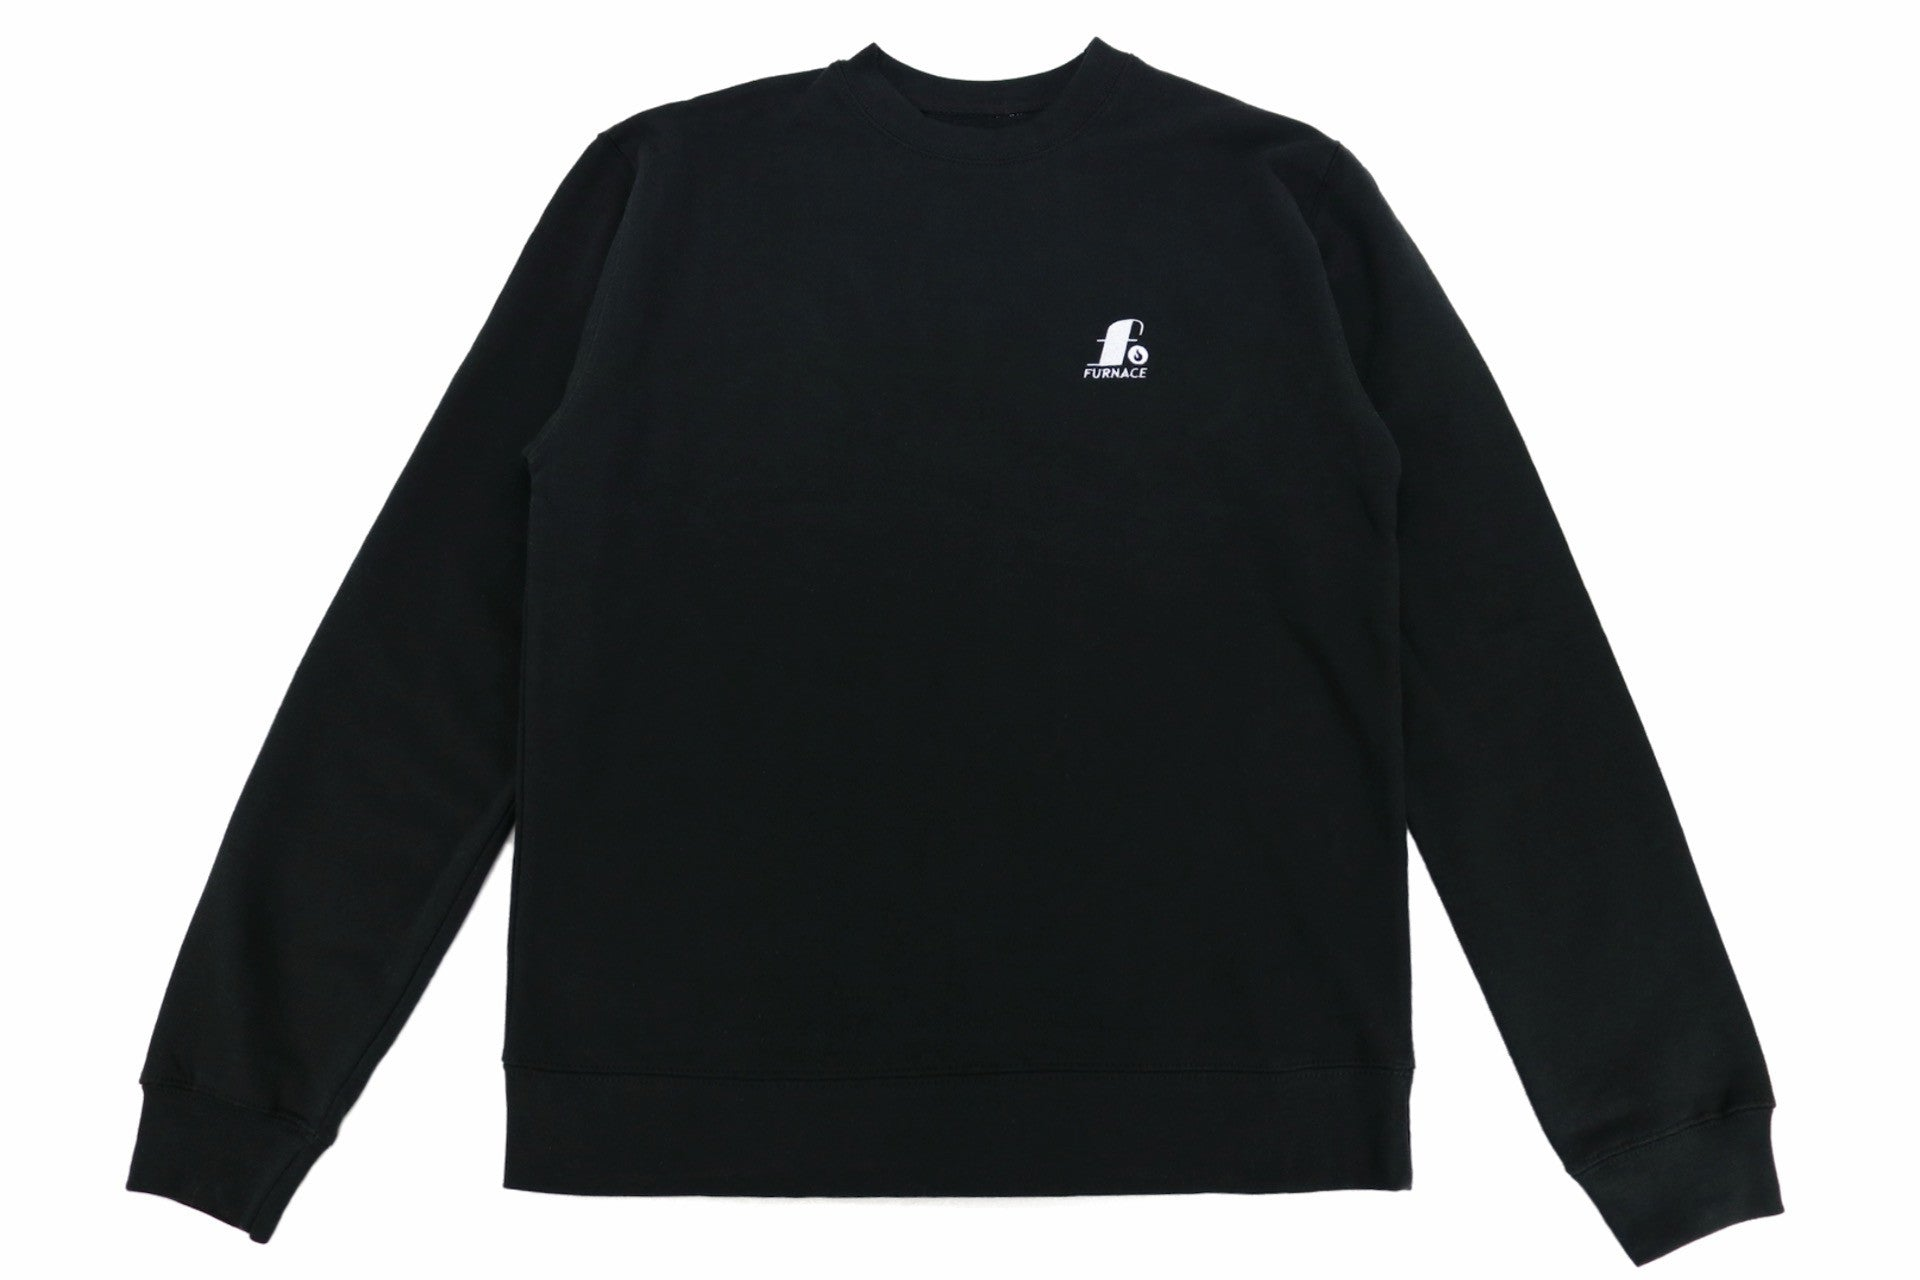 Jazz Embroidered Crewneck Sweater